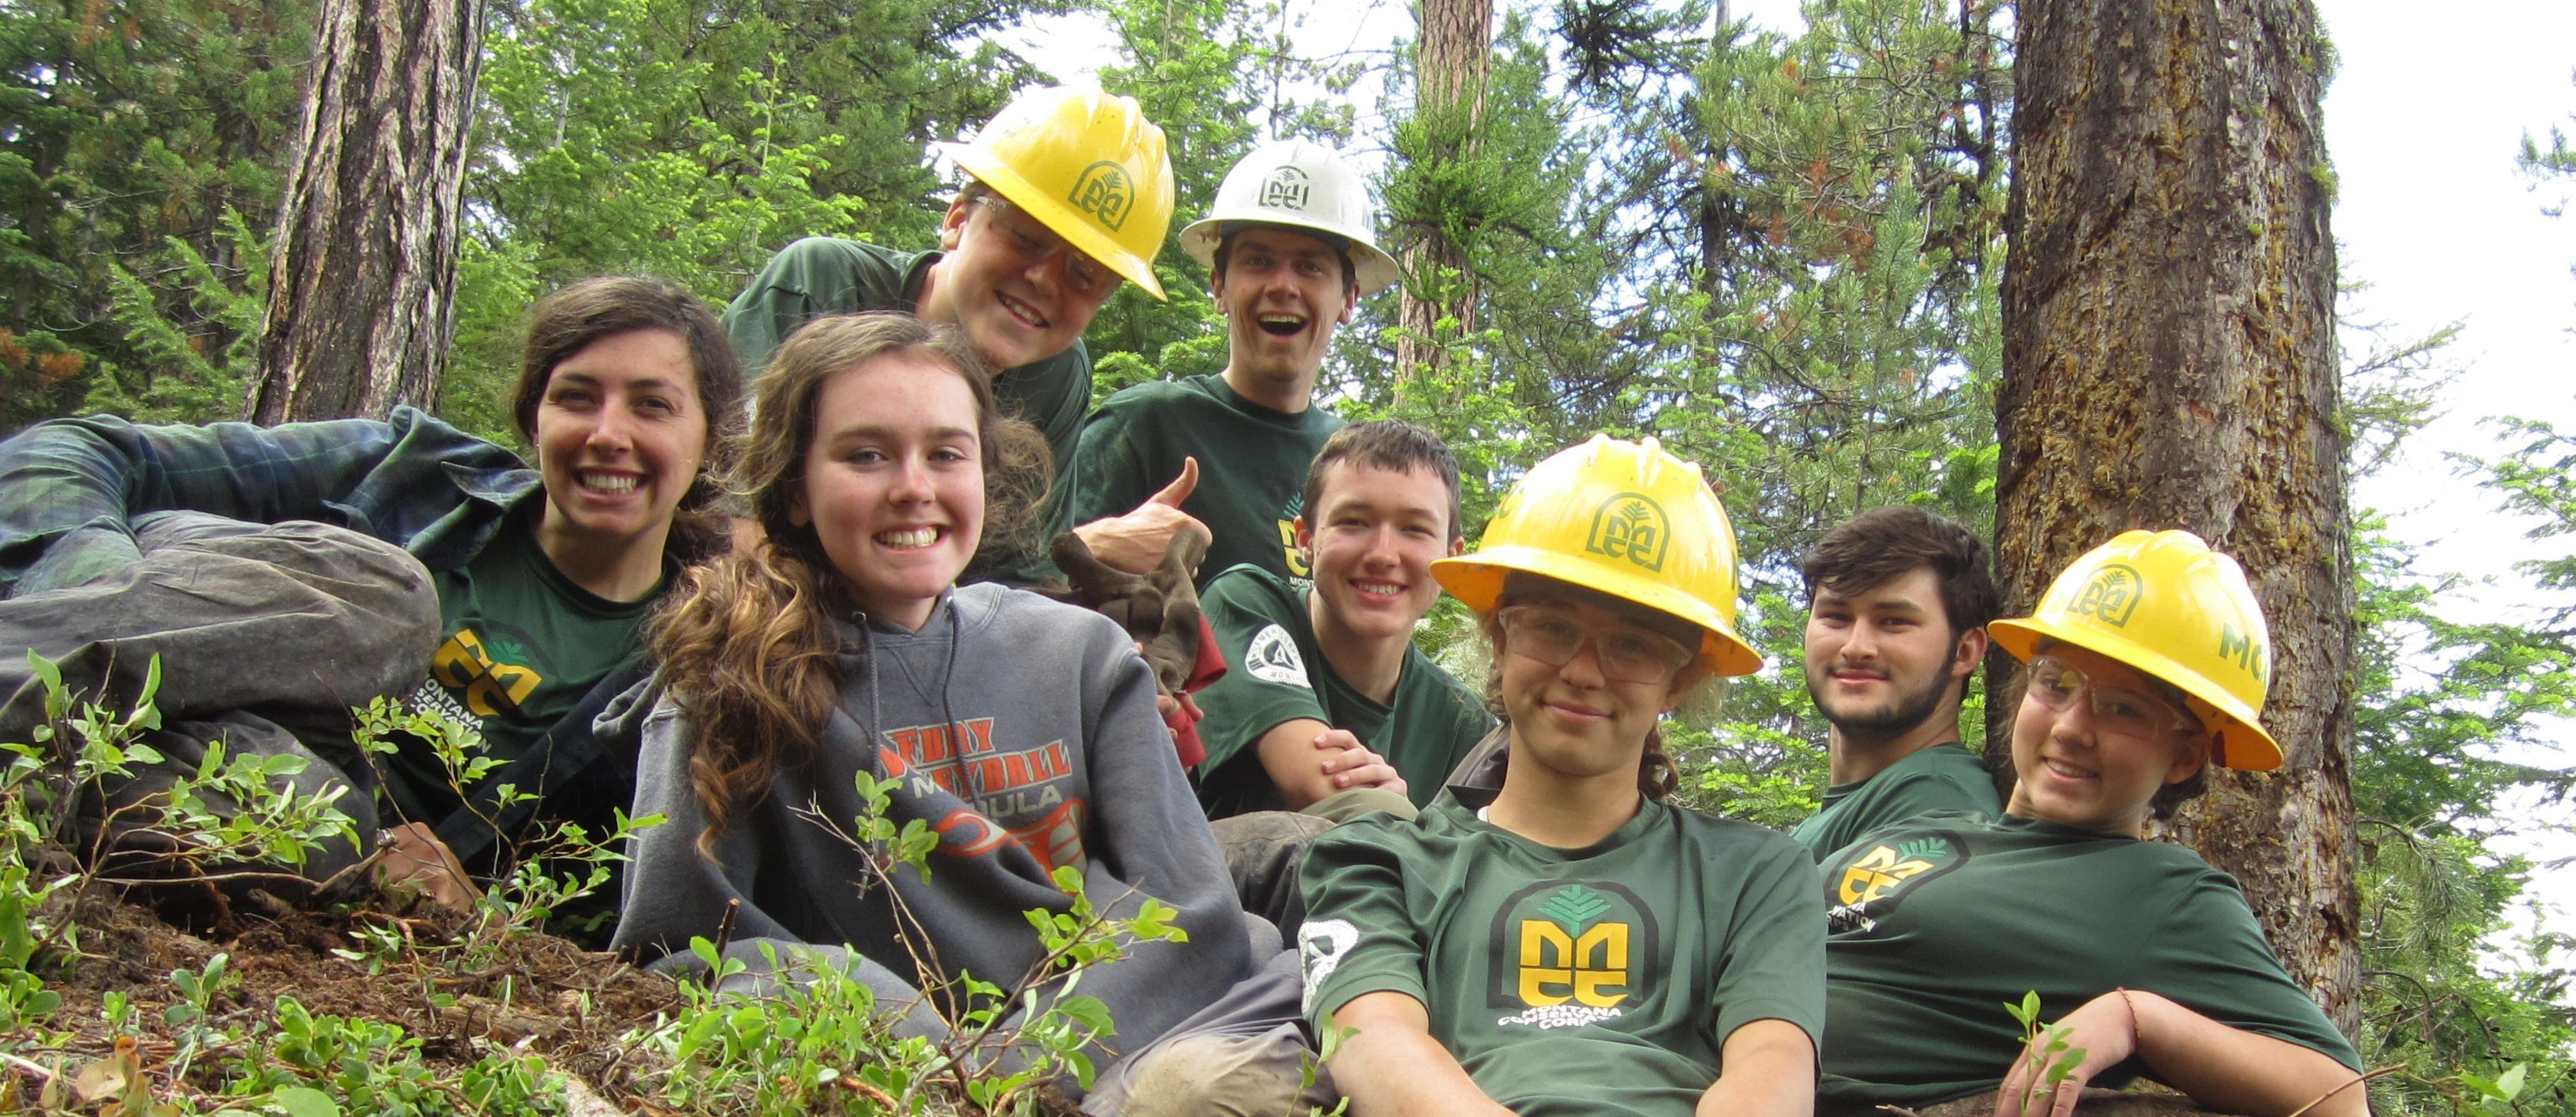 Seven youth in the forest and are wearing green MCC t-shirt made with wicking material, both boys and girls and three have on the yellow MCC helmet and 1 has a white helmet and is a young adult leader for the youth program.